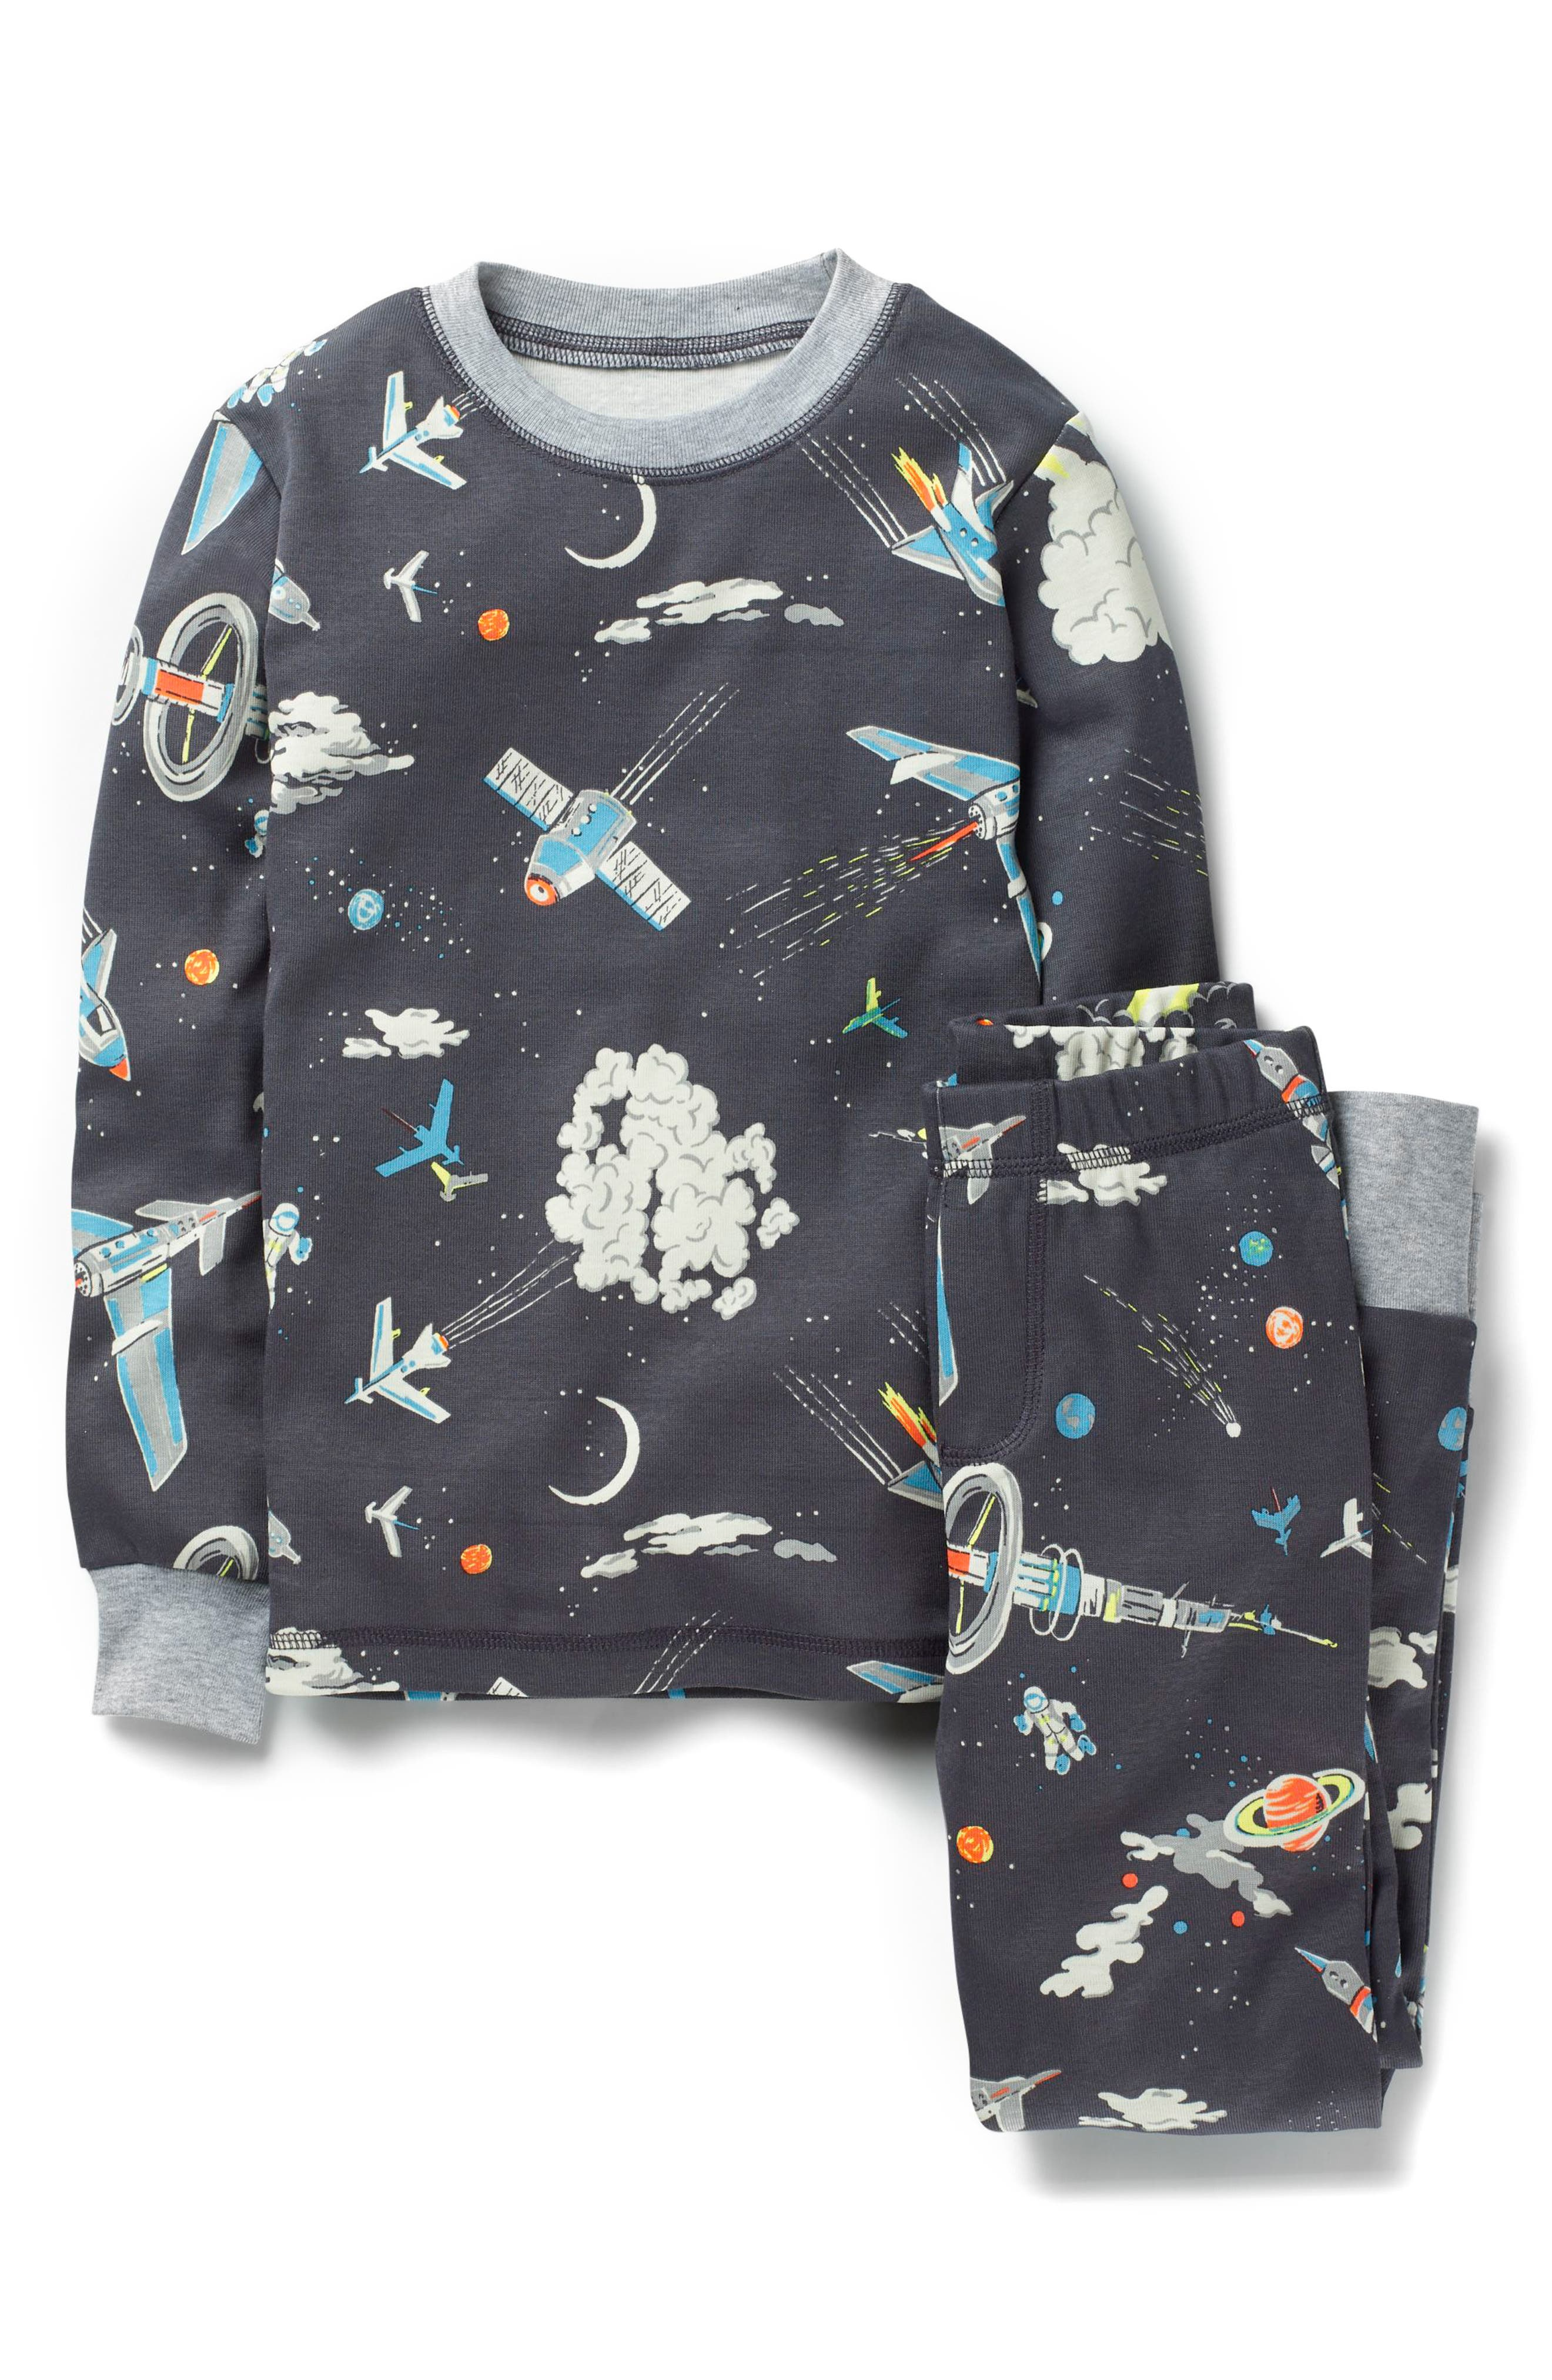 Glow in the Dark Fitted Two-Piece Pajamas,                             Main thumbnail 1, color,                             Asphalt Gray